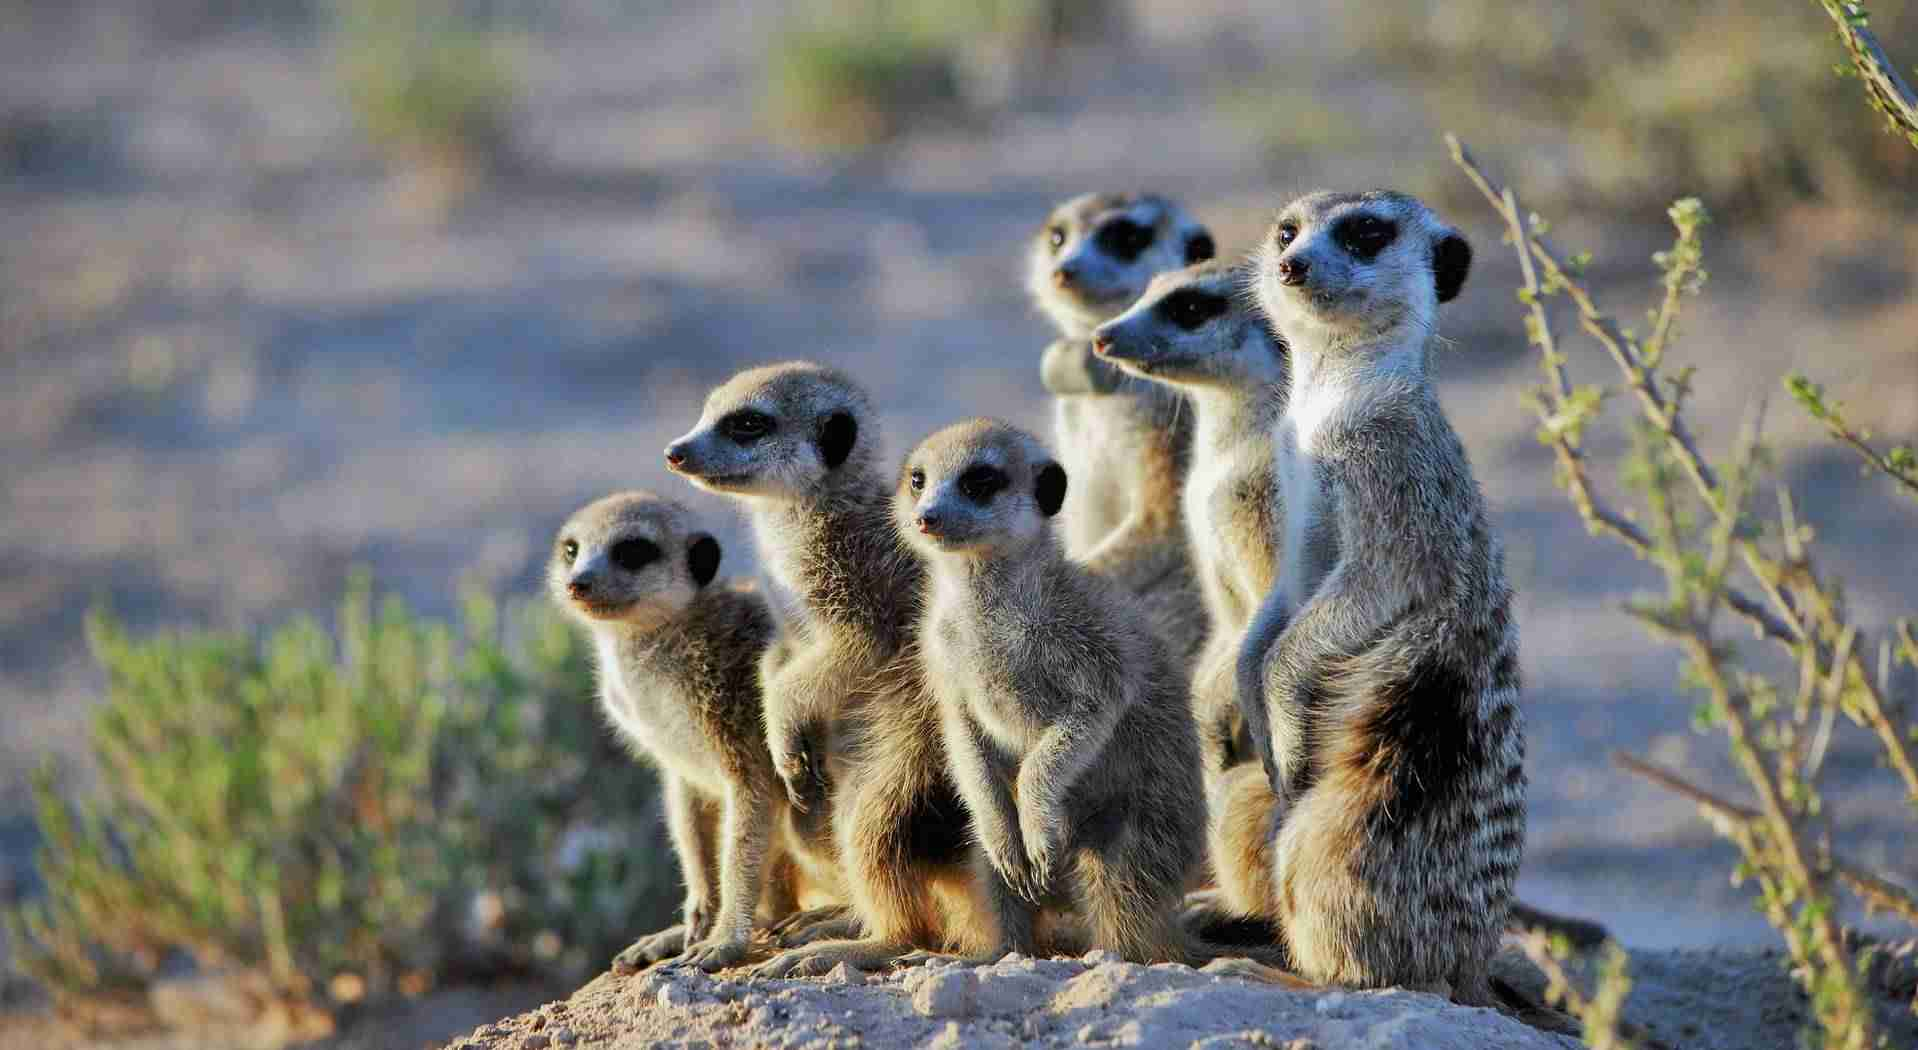 Meerkat Amazing Facts